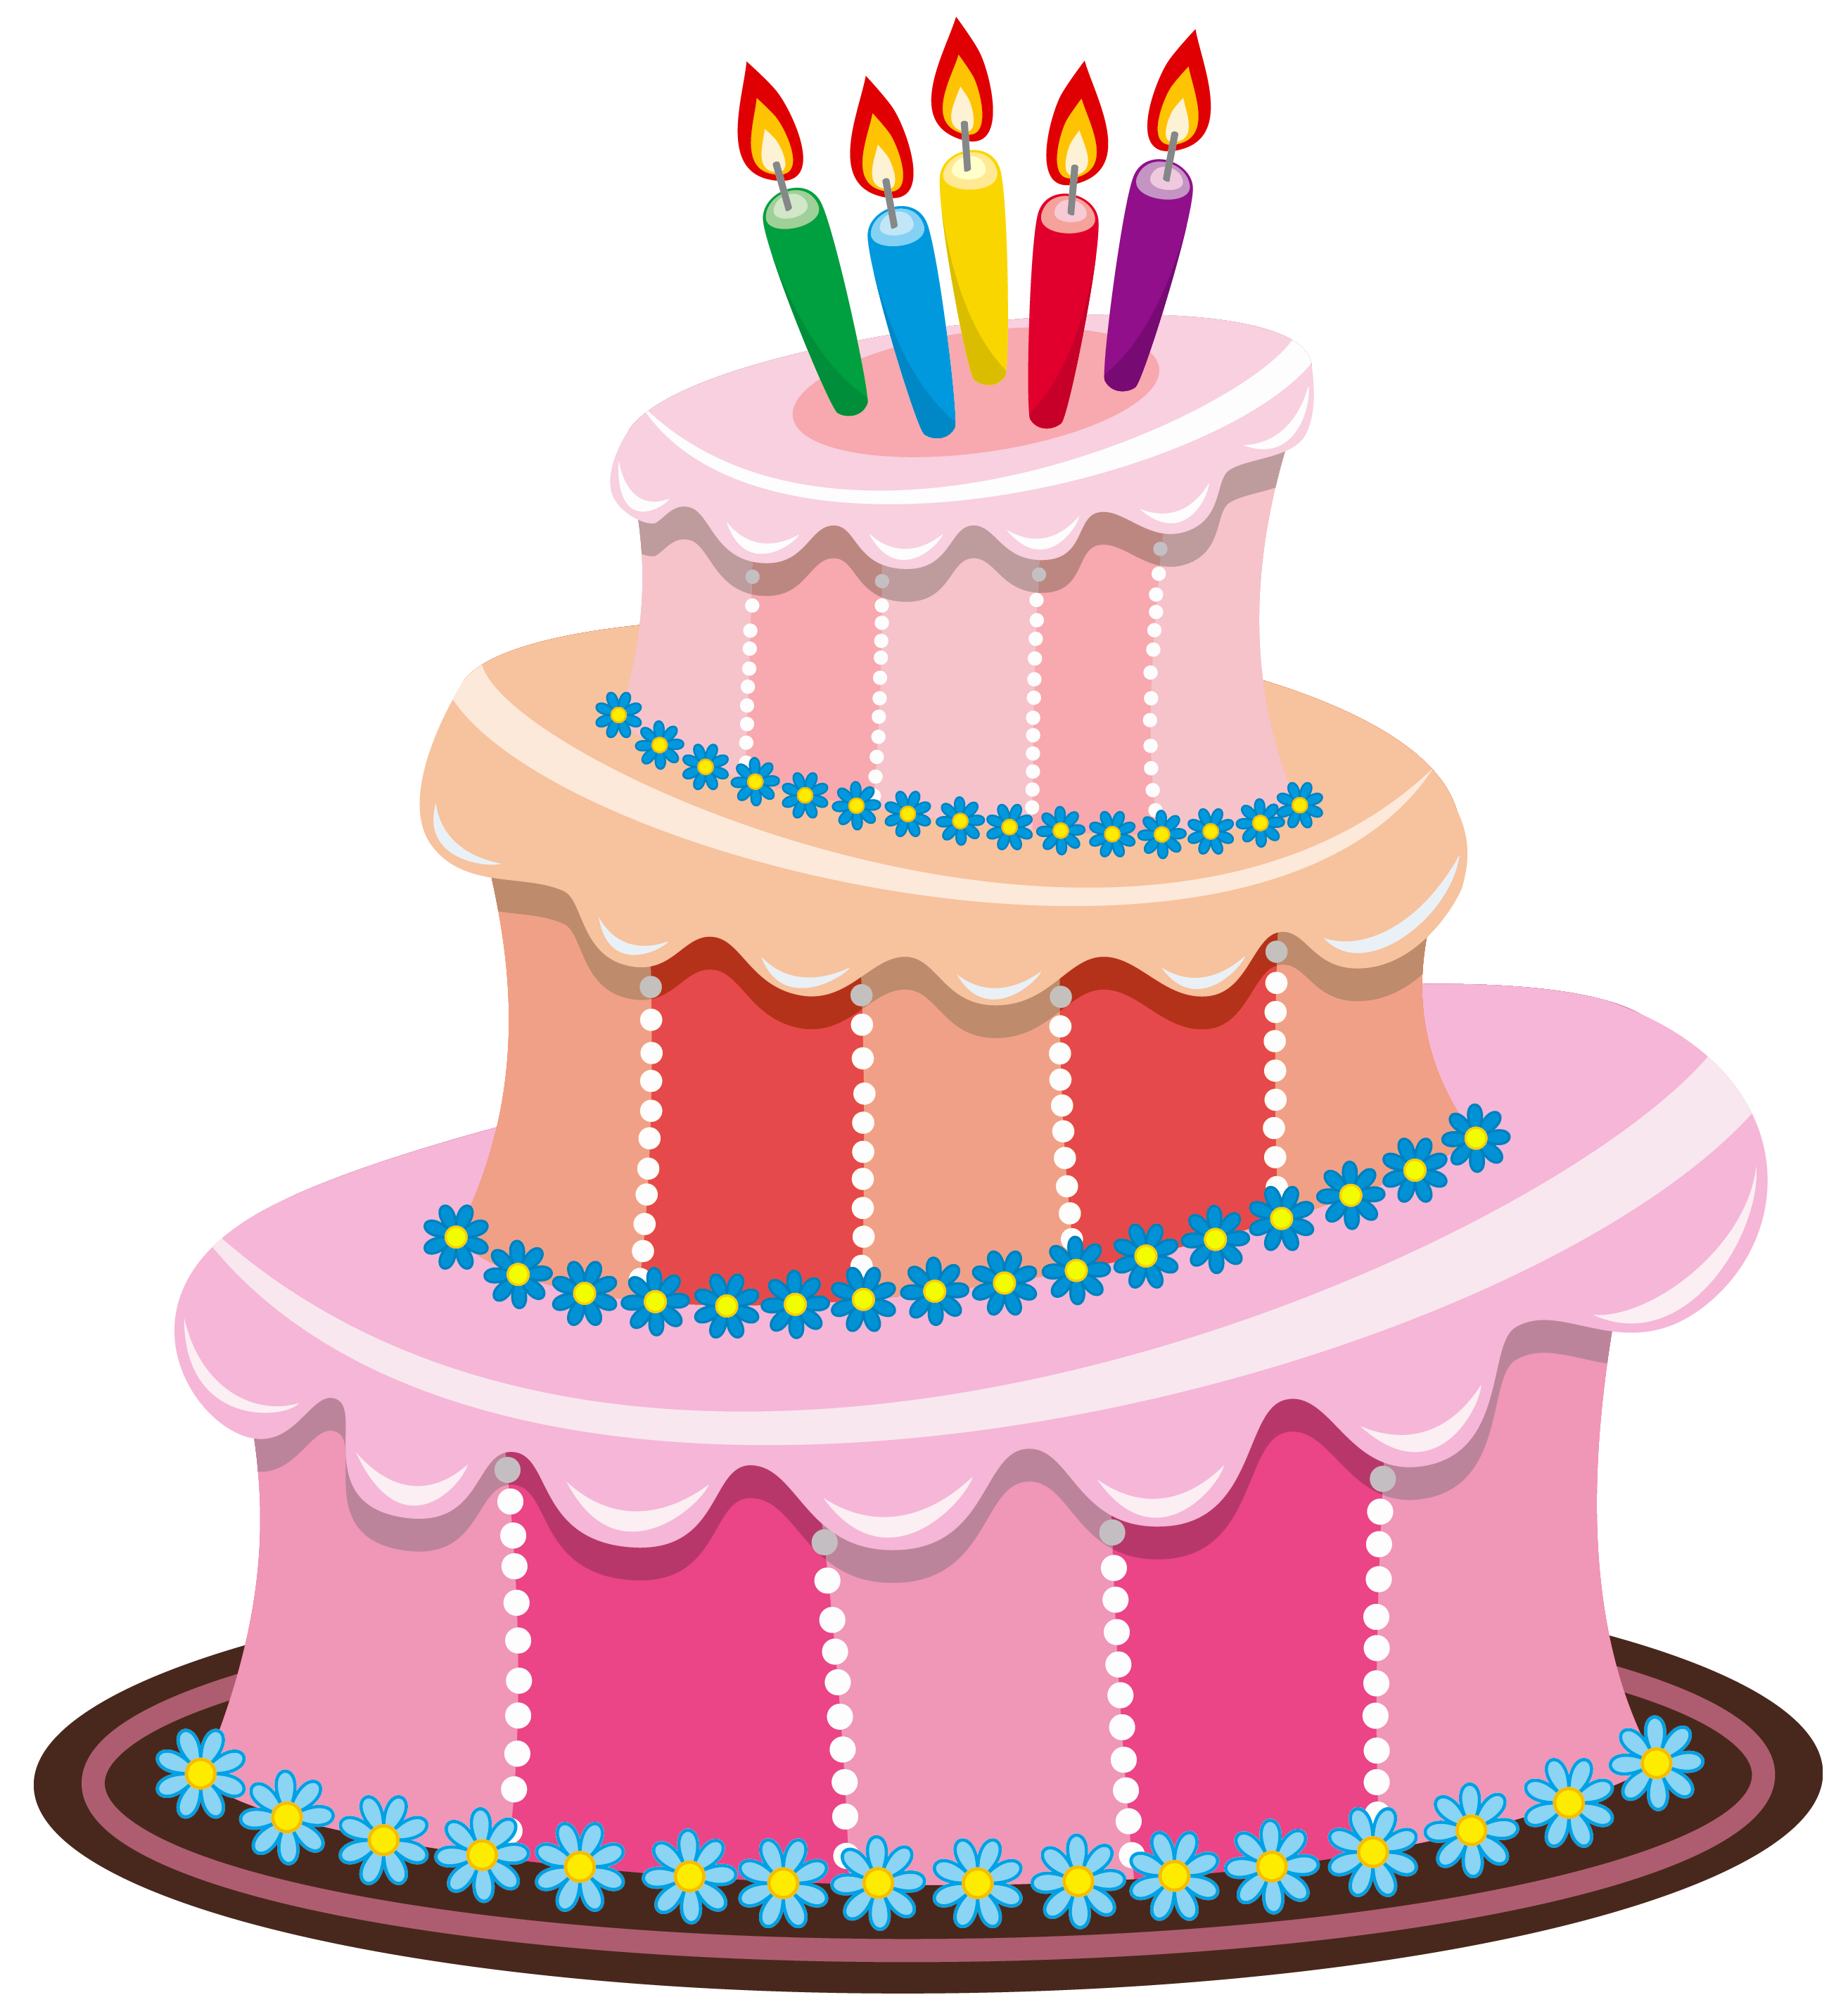 Girly birthday cake clipart clipart library Pink Birthday Cake PNG Clipart | Gallery Yopriceville - High ... clipart library